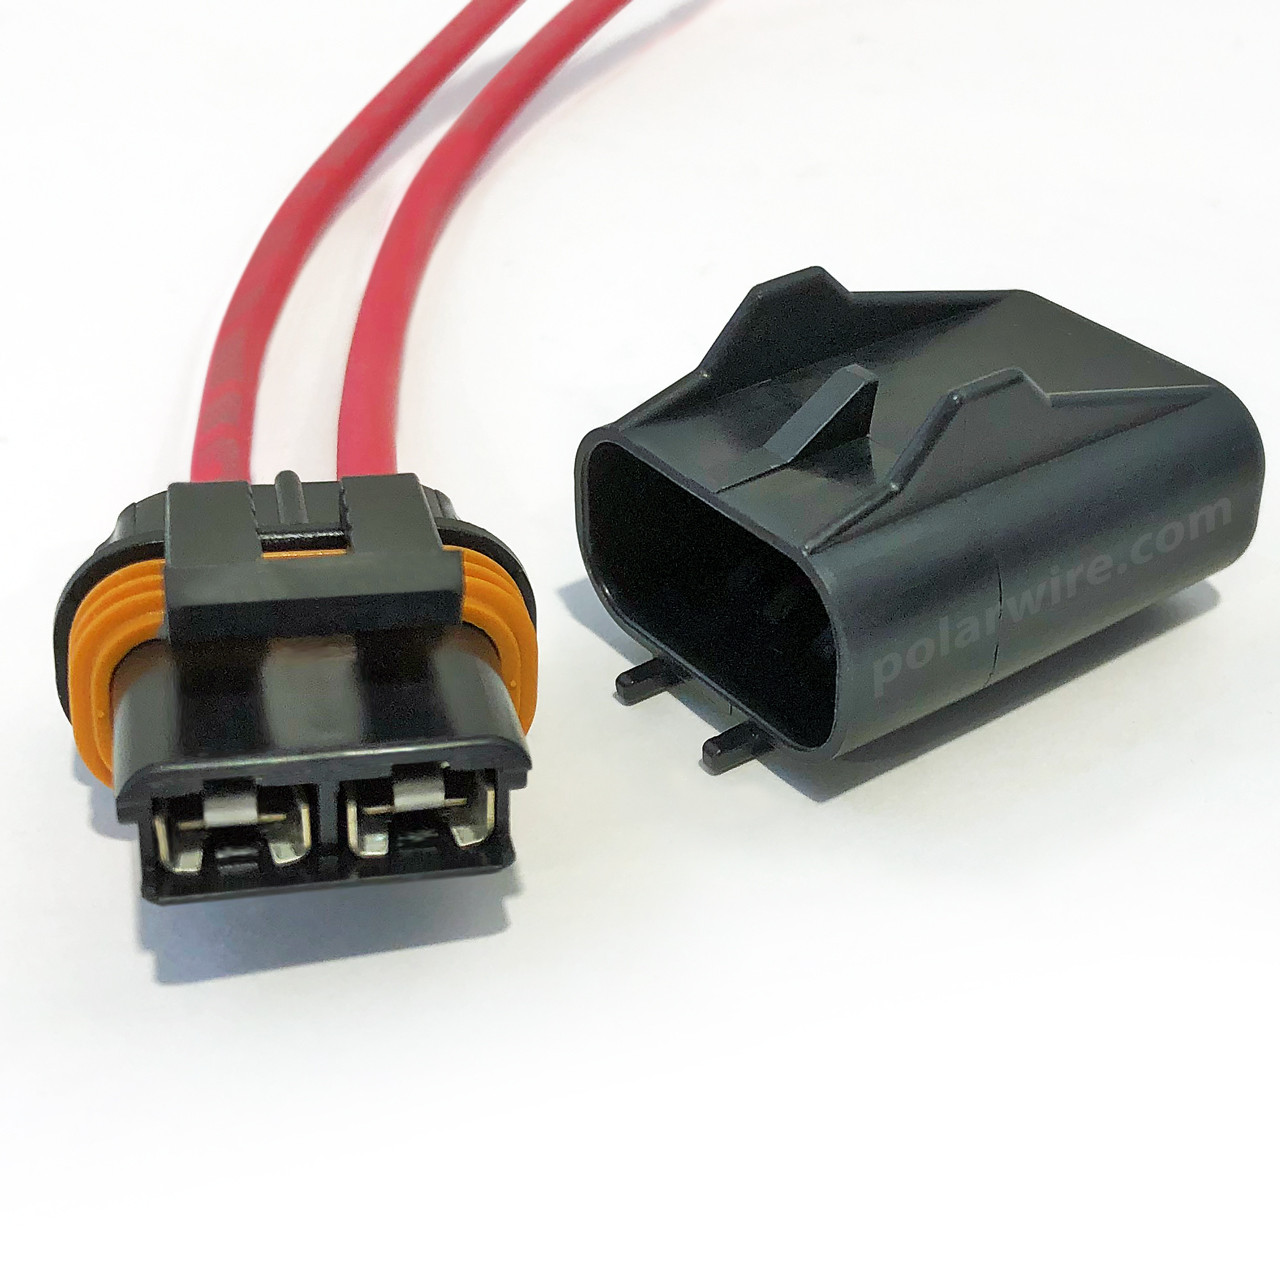 Arctic Ultraflex Blue ATO/ATC Weather Resistant Fuse Holders have triple ribbed silicone seals to lock out water and dirt